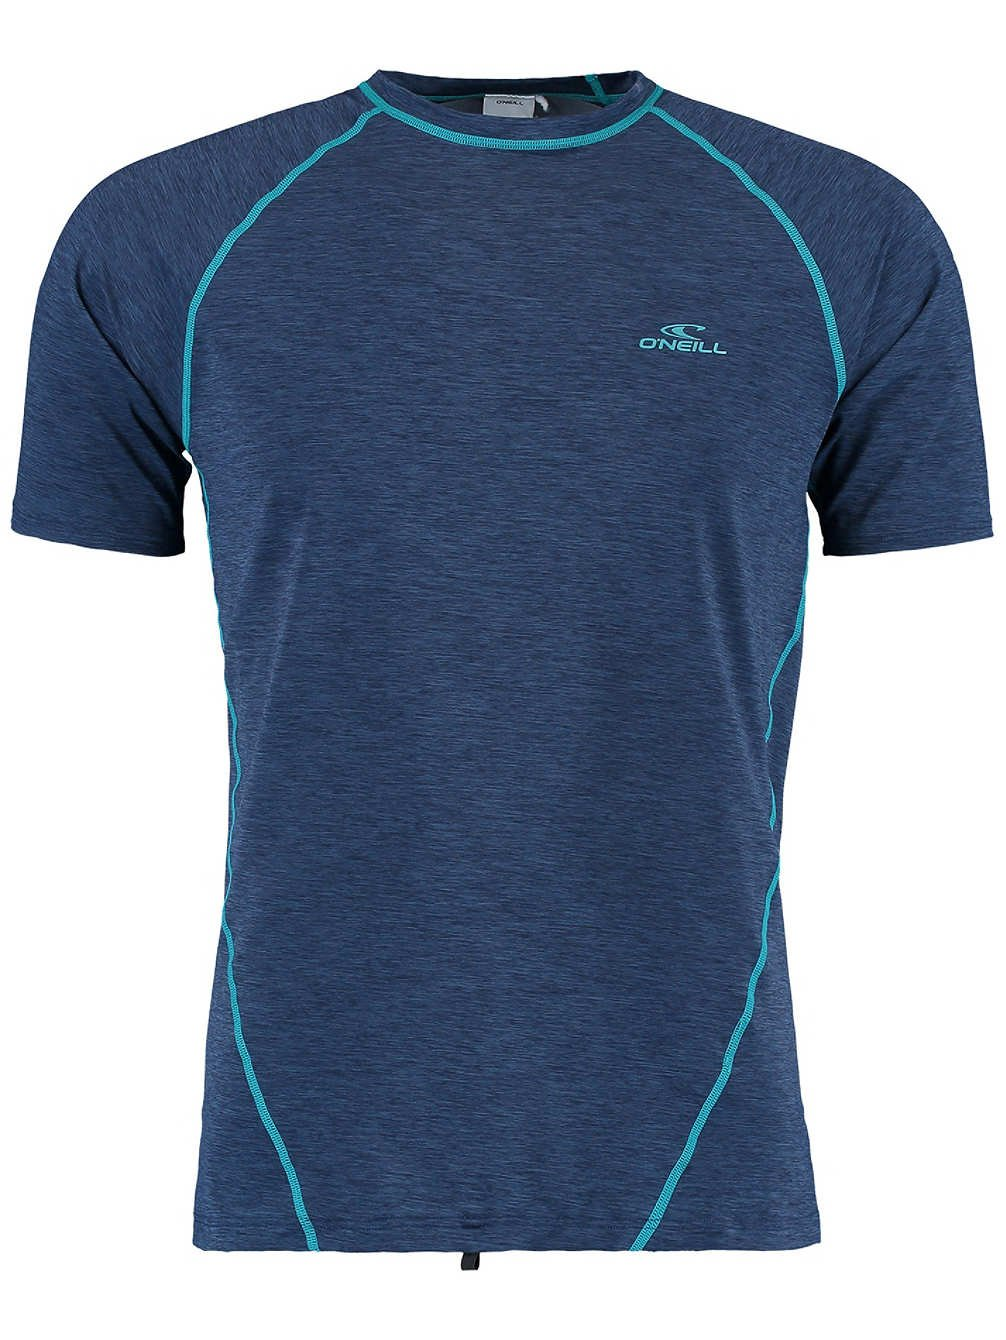 O'Neill Herren Trainingsshirt Active Short Sleeve Rashguard Skin